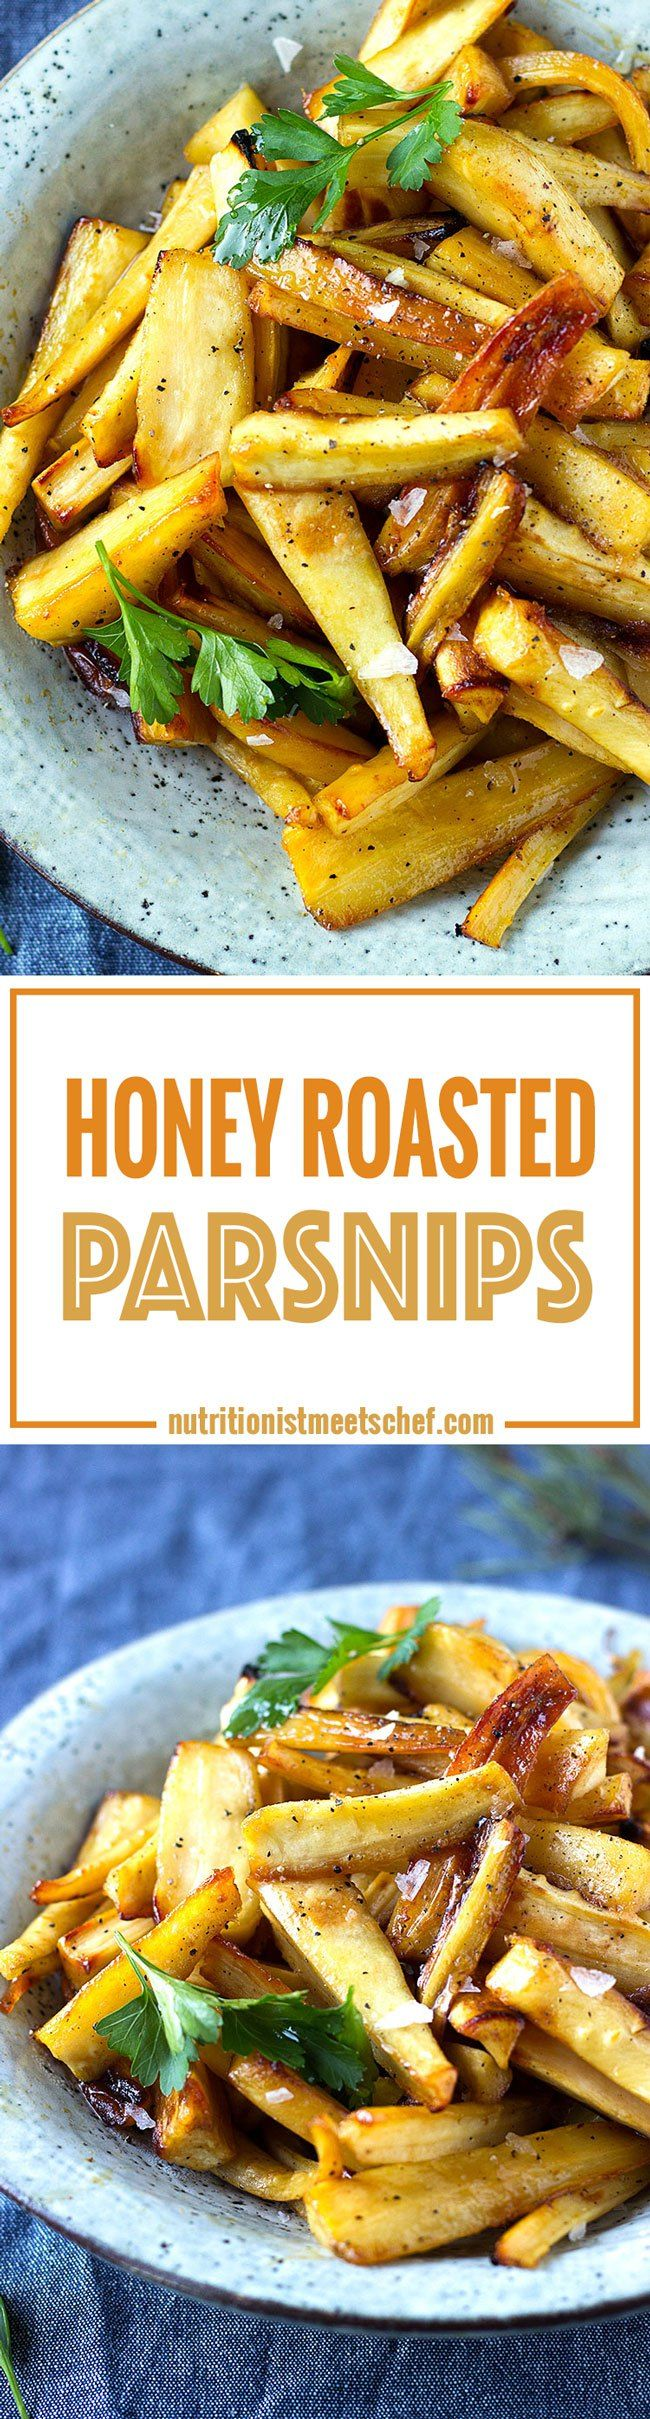 Honey Roasted Parsnips! Perfect for Christmas dinner or as a side dish! Get the recipe at nutritionistmeetschef.com